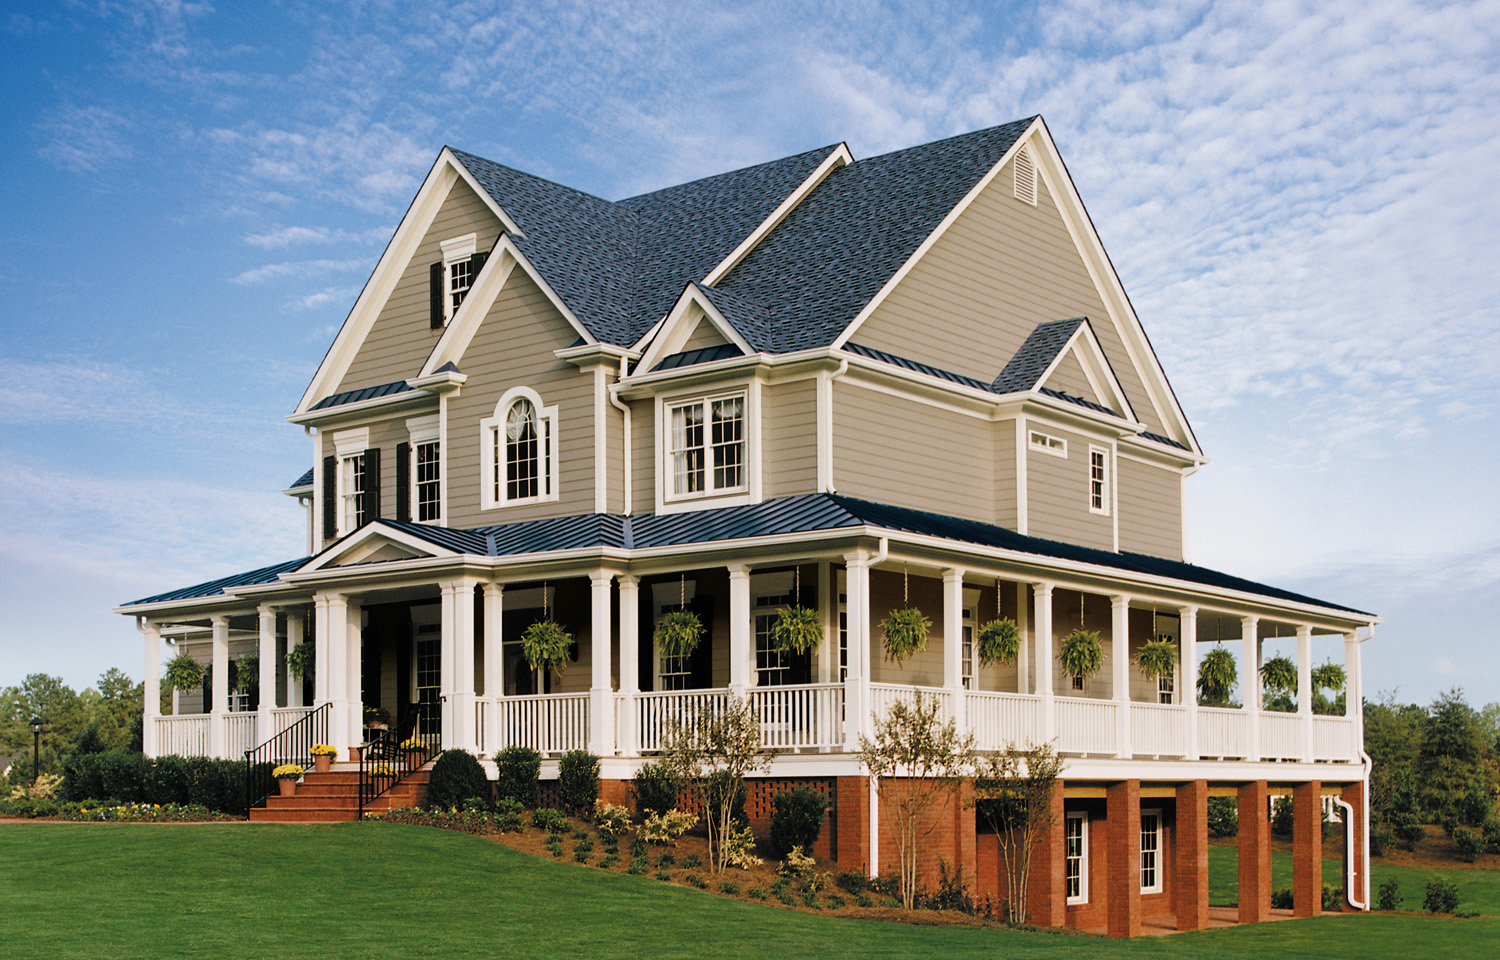 Maintaining A Victorian Style Look With Fiber Cement Siding